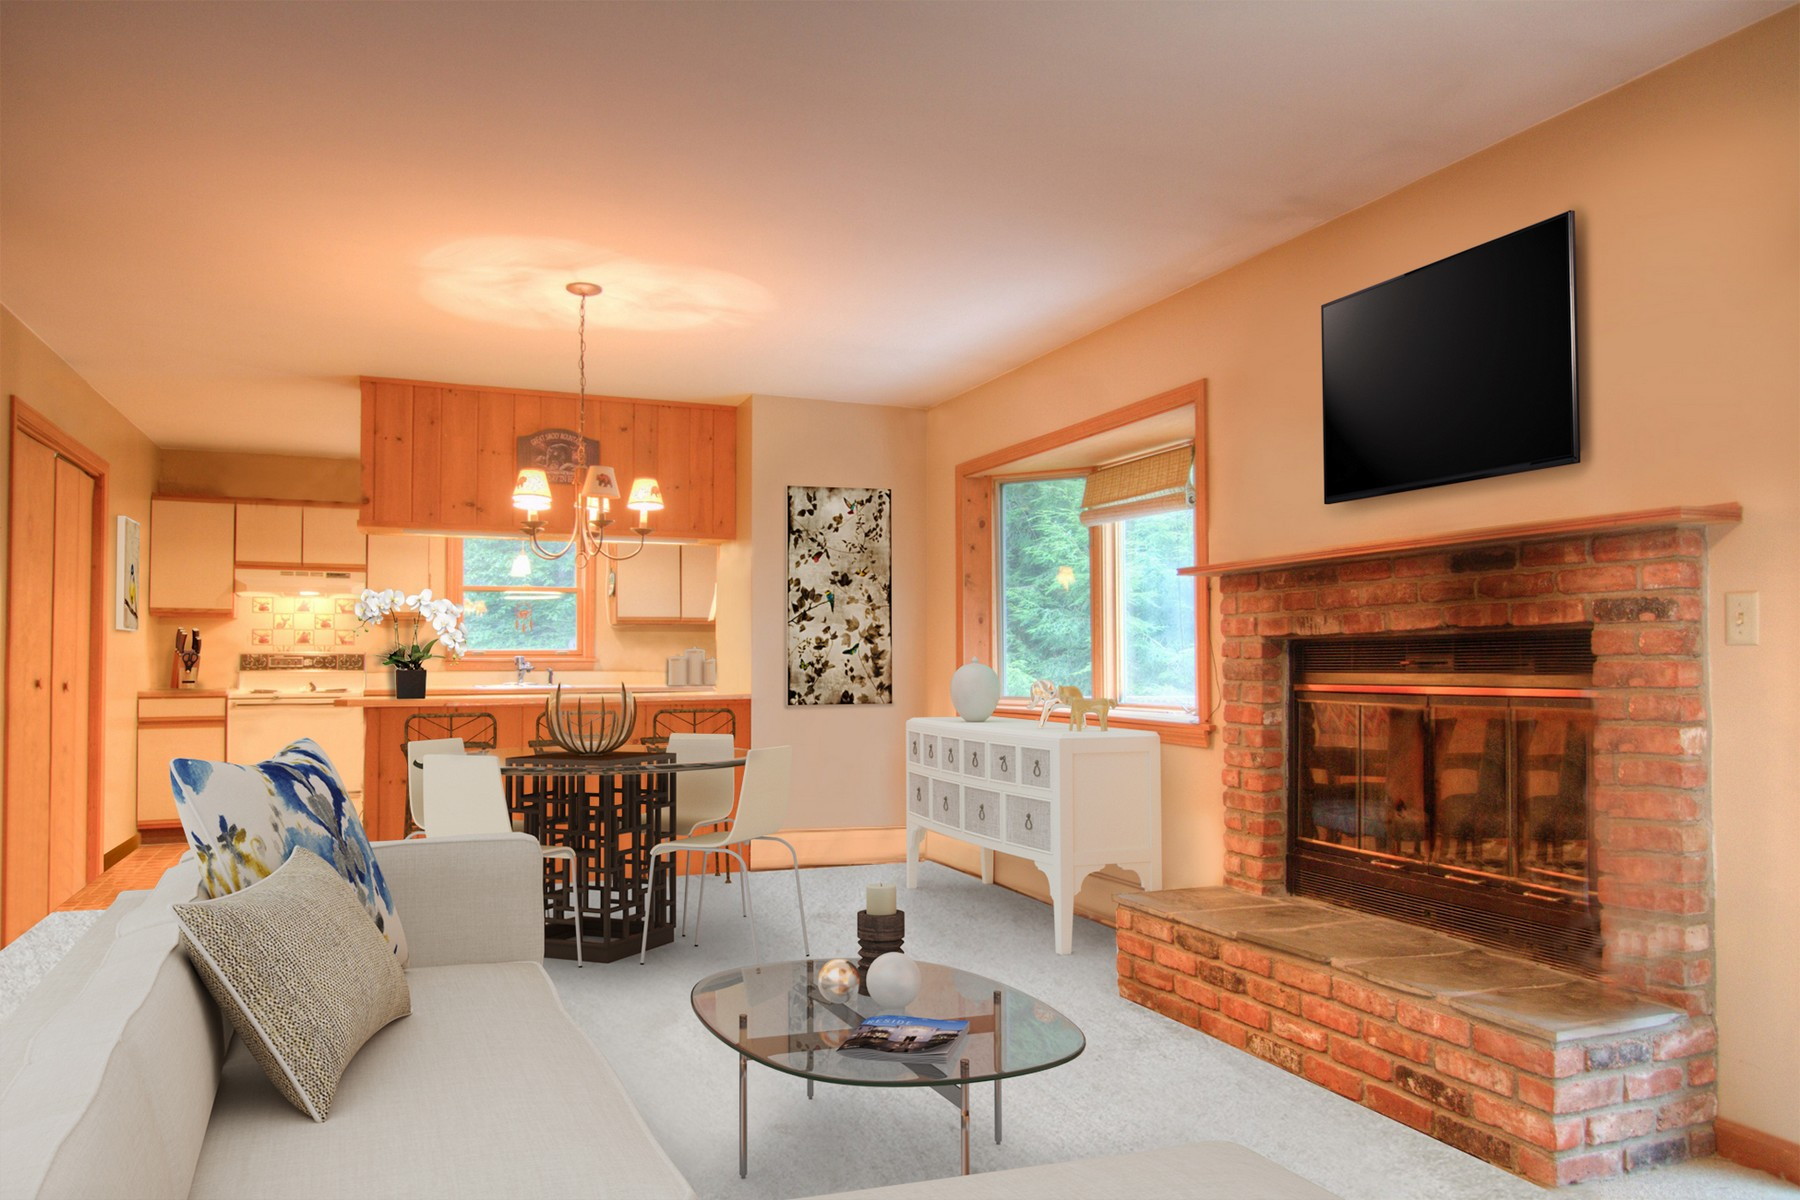 Single Family Homes for Sale at 525 Deerwood Hill, Londonderry 525 Deerwood Hill Londonderry, Vermont 05155 United States